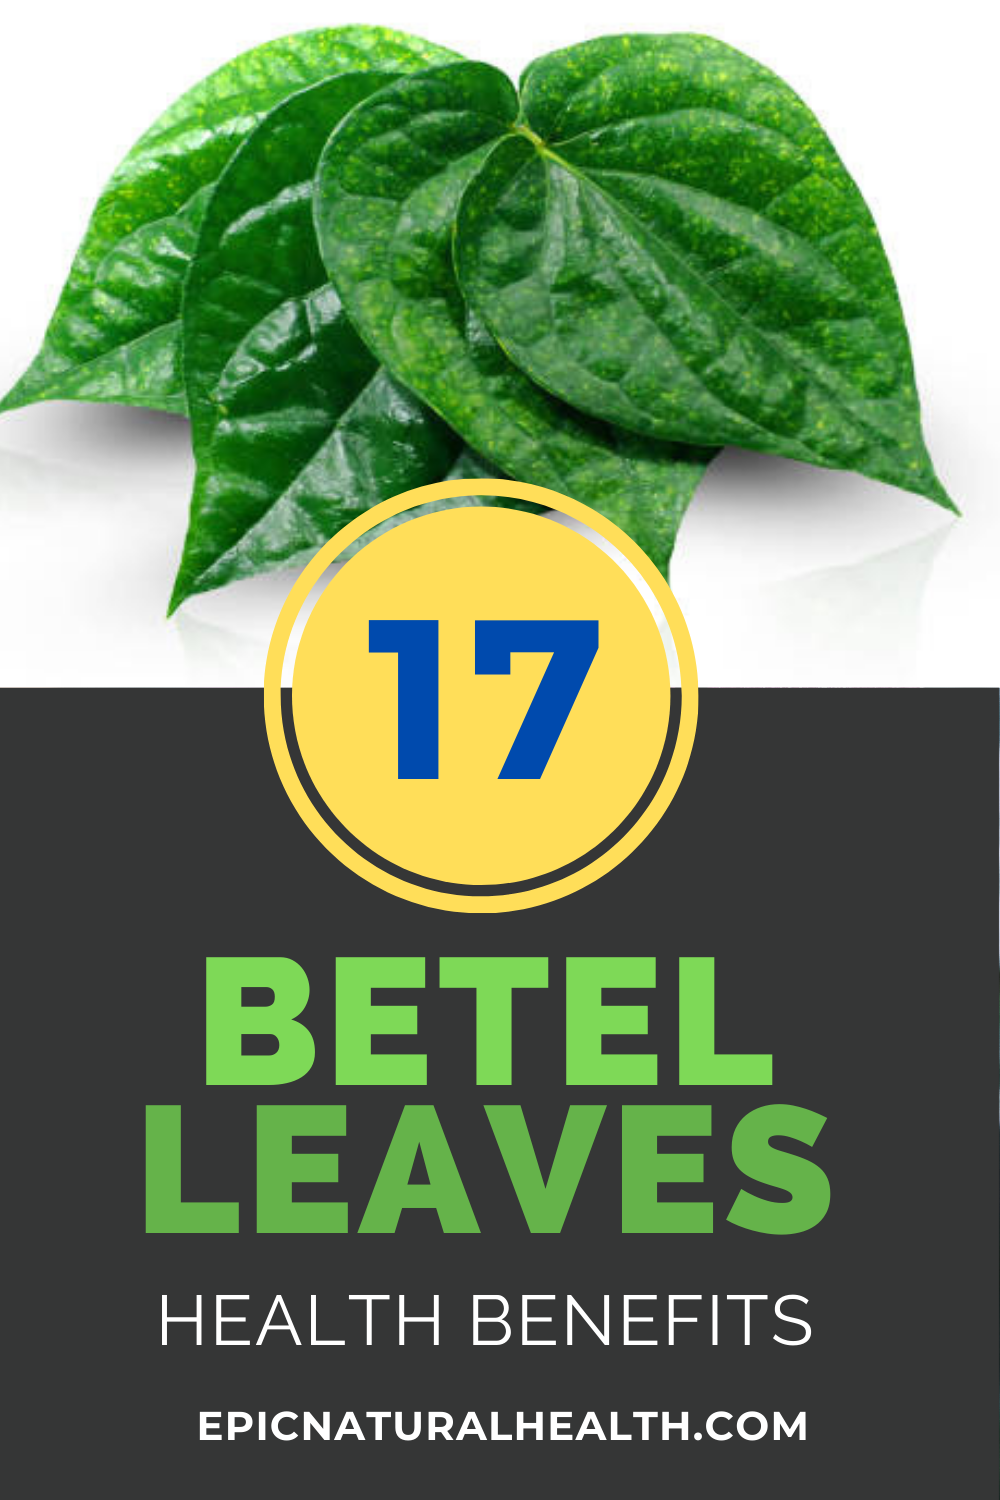 Betel Leaves health benefits pin